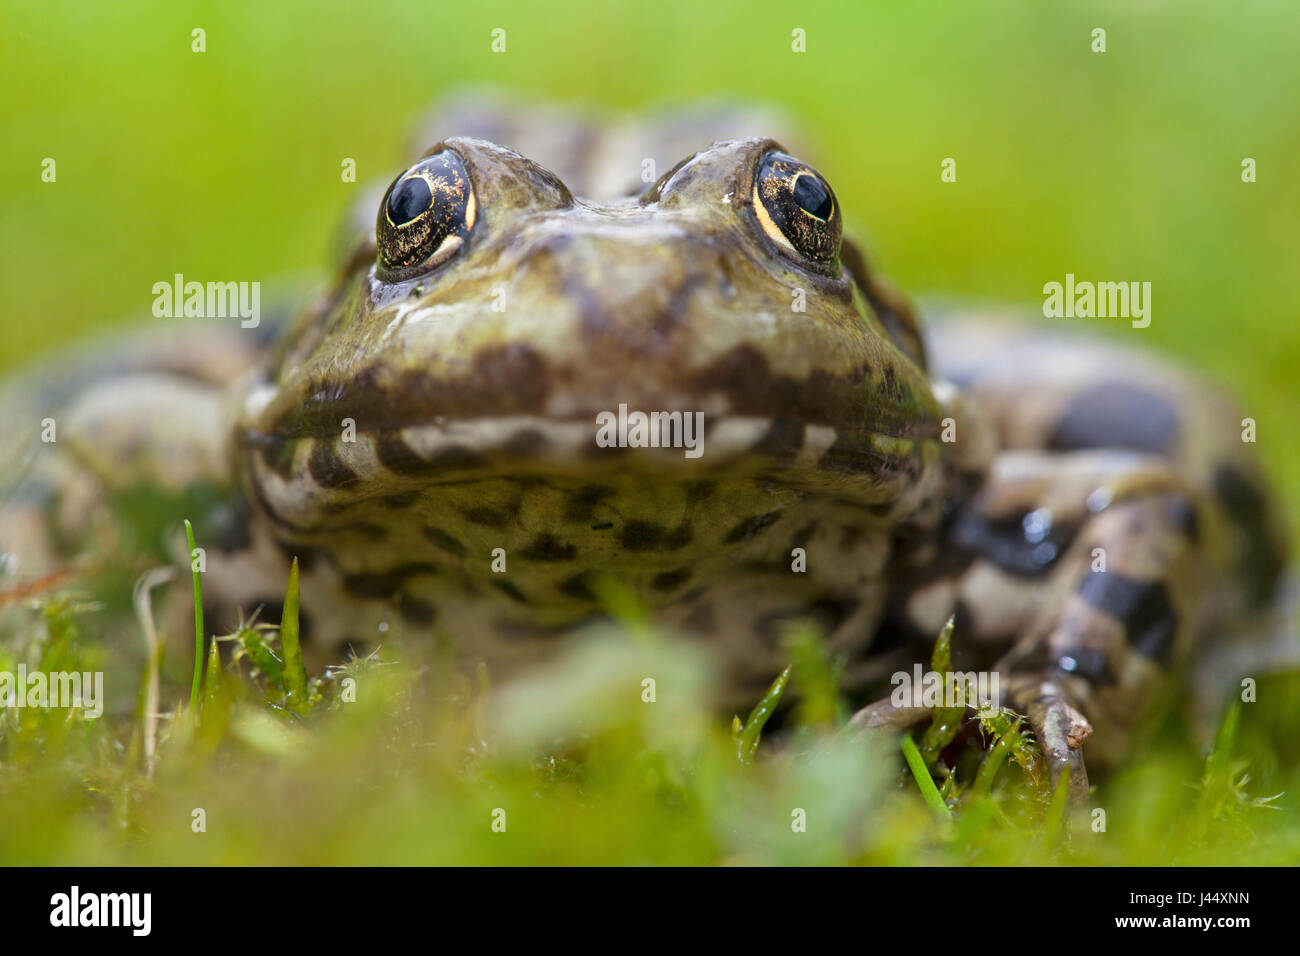 frontal portrait of a marsh frog - Stock Image